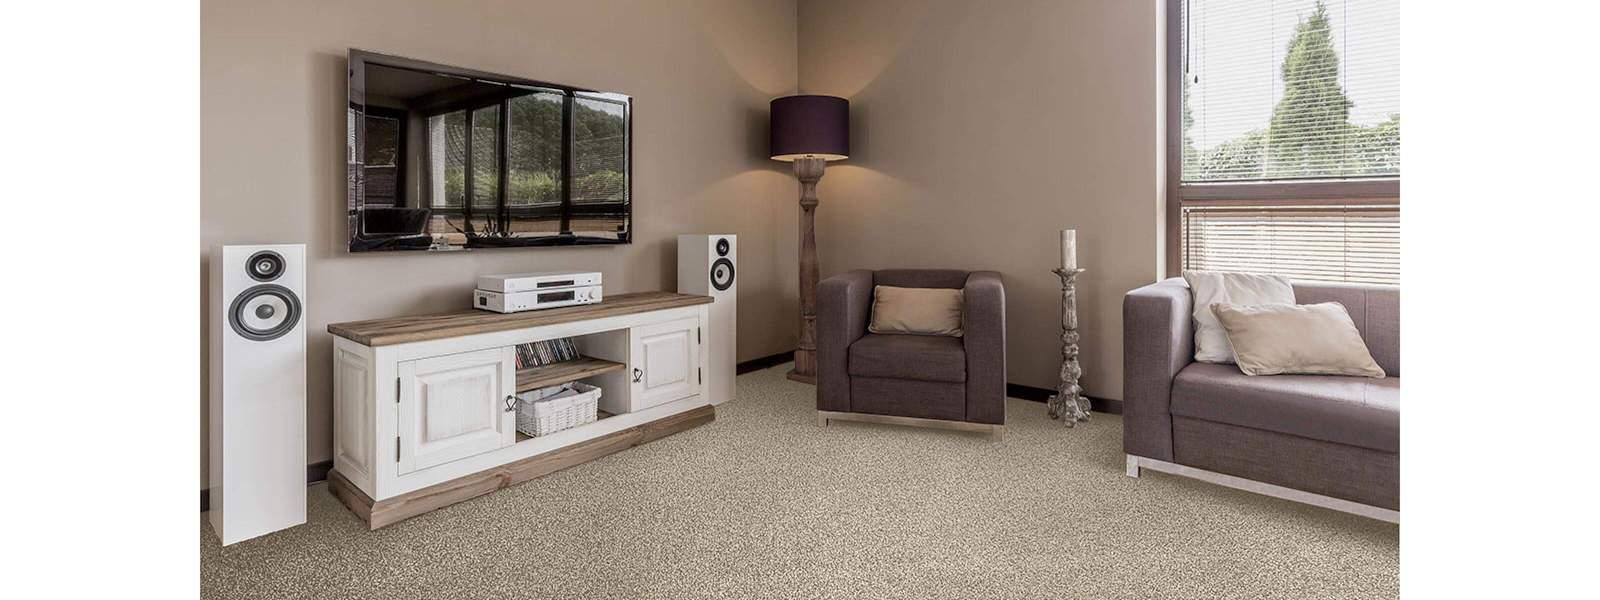 Shabby Chic Lounge Roomset with Beige Carpet